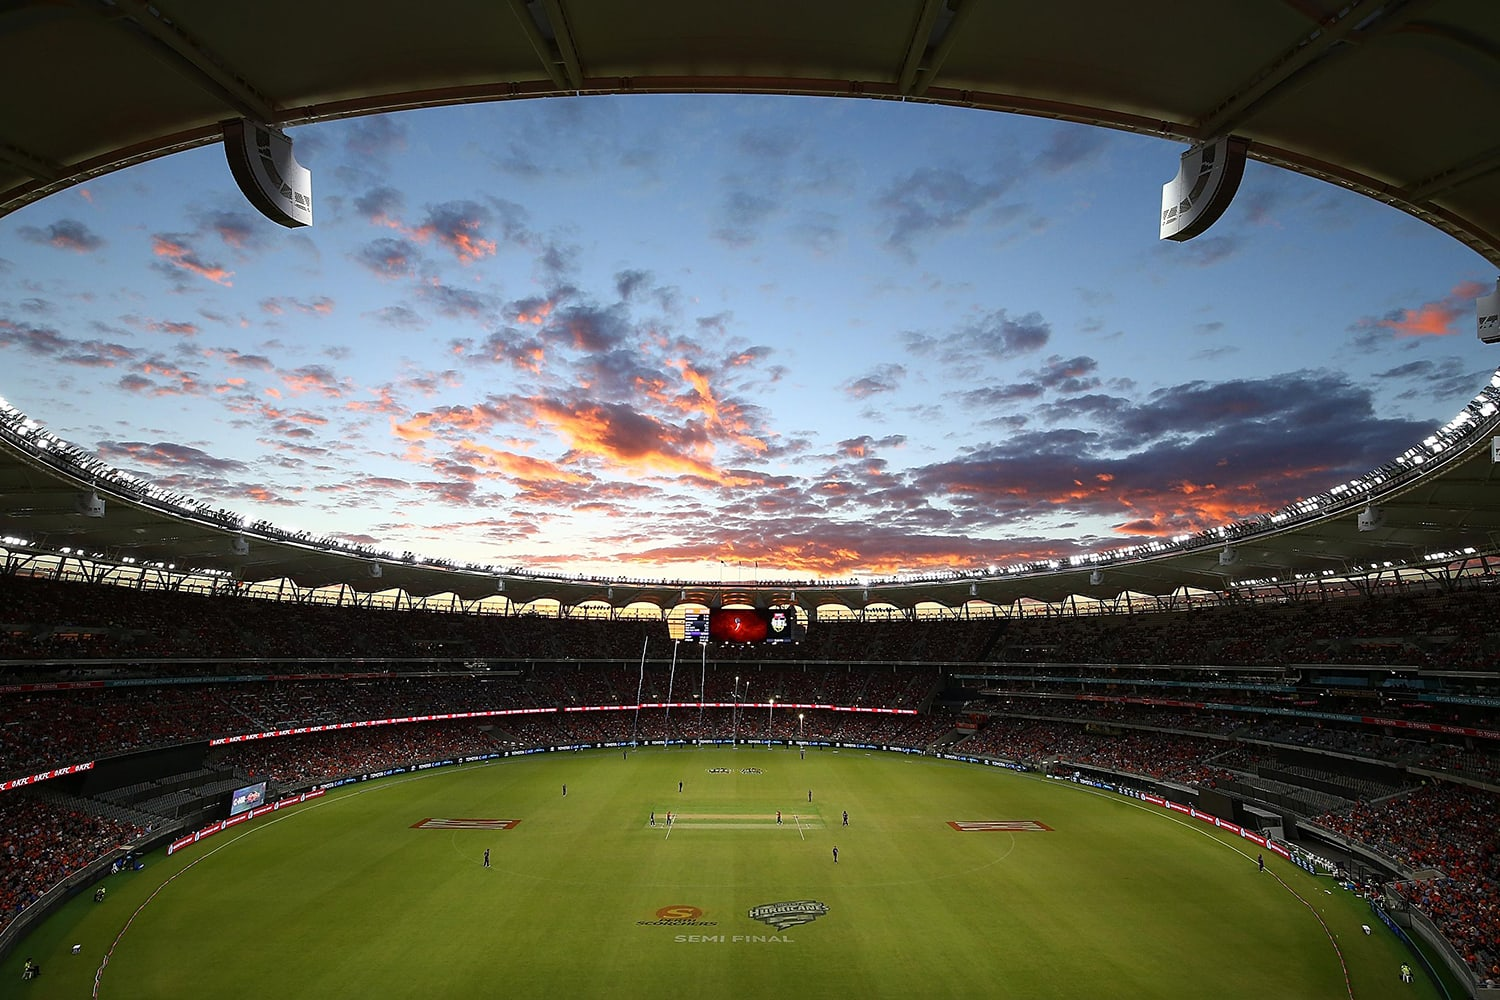 The Optus Stadium Tour